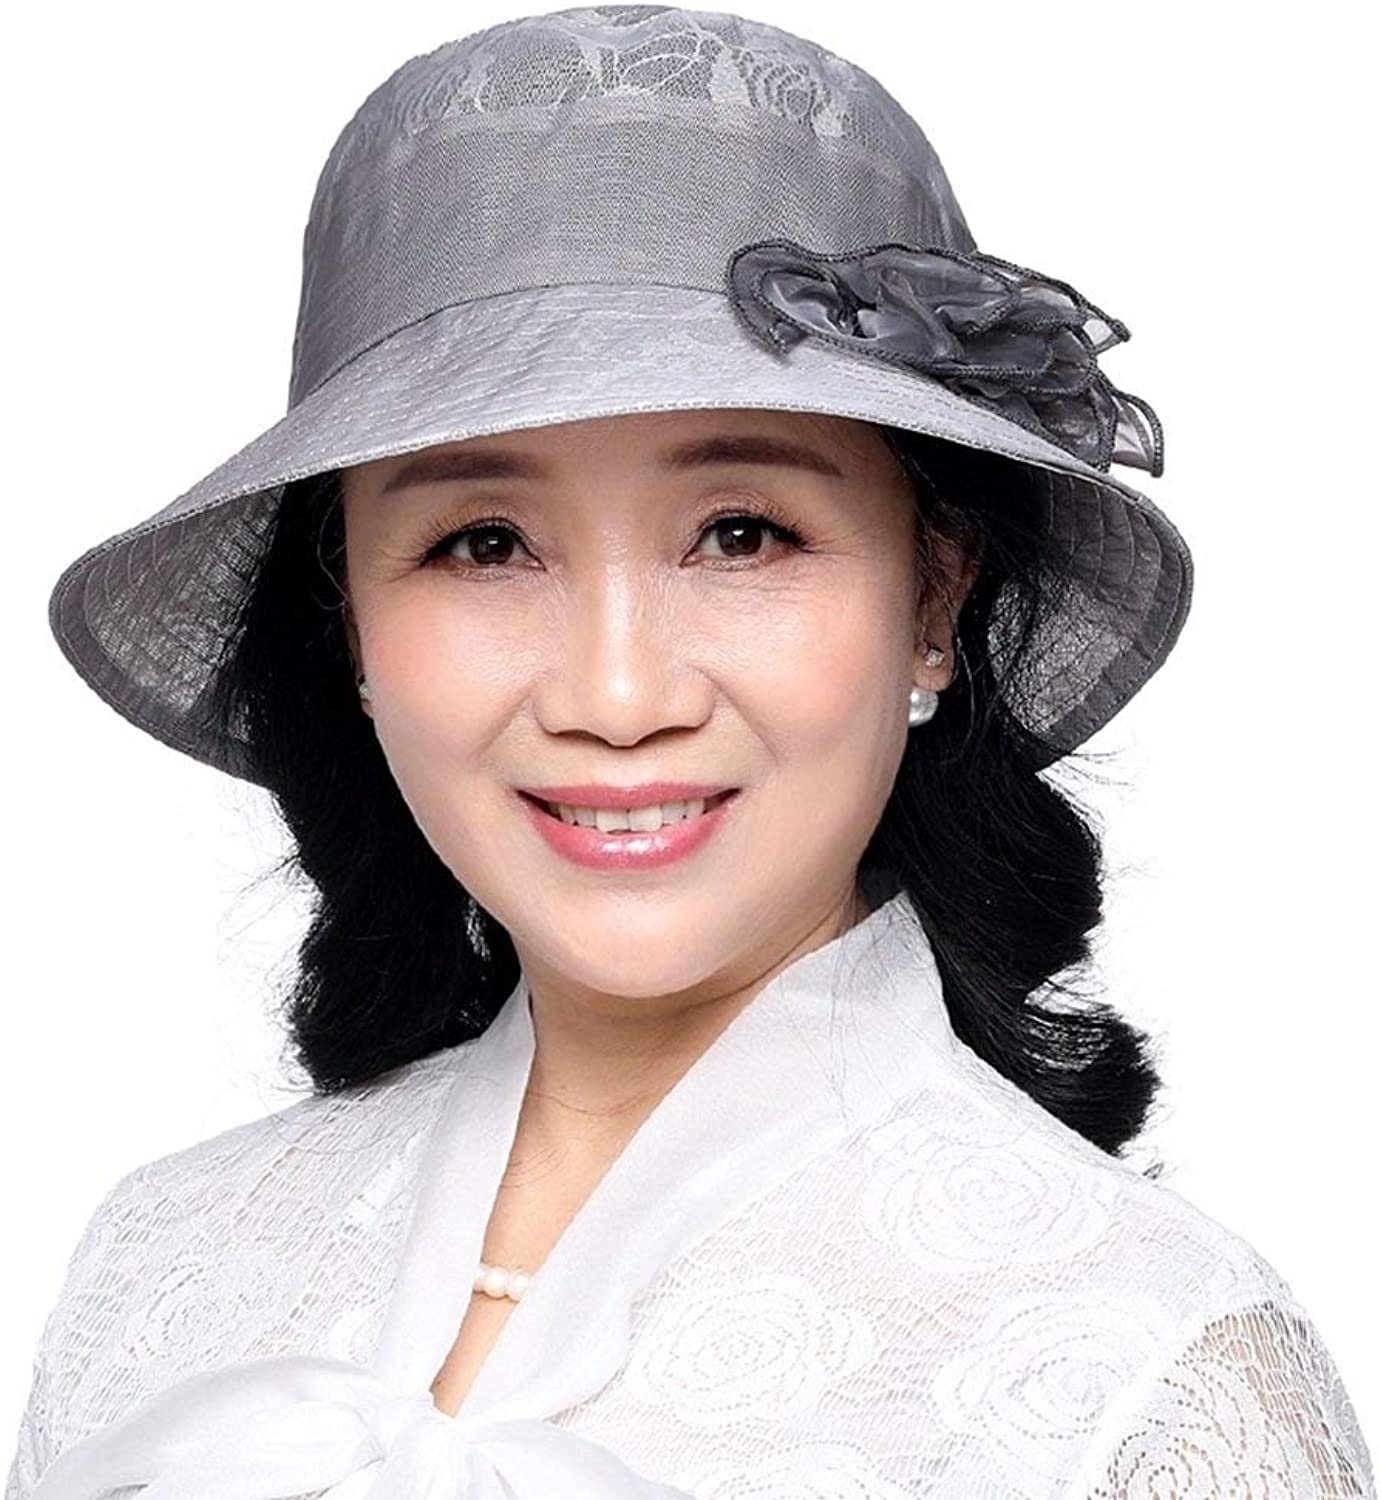 I want to fly freely Summer Hat, Sun Hat Old Women Aged Ladies Mother Cap AntiUV Summer Sunscreen Foldable Breathable Absorbent, 5 colors Optional Summer Sun hat